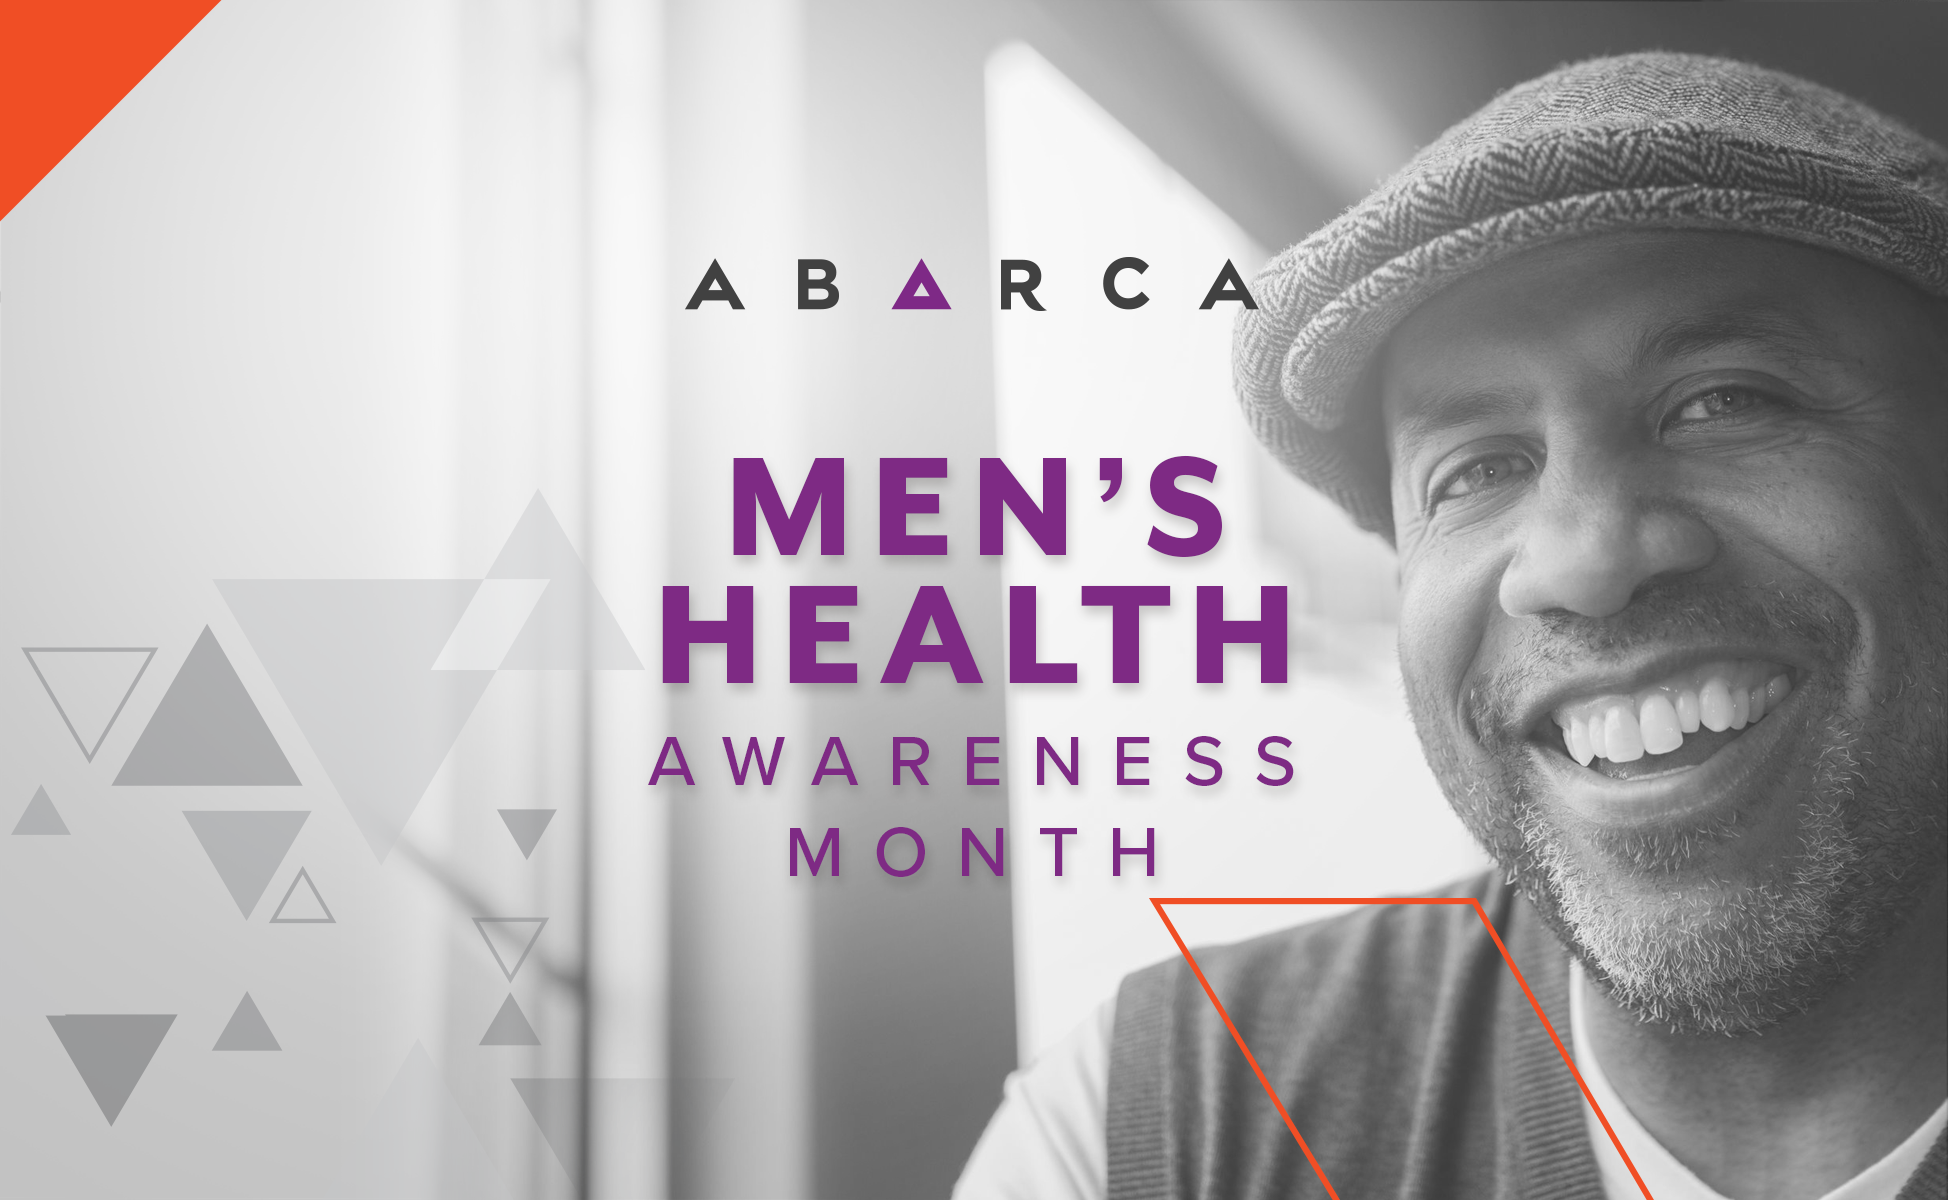 Abarca takes action this Movember by bringing awareness to Prostate and Testicular Cancers